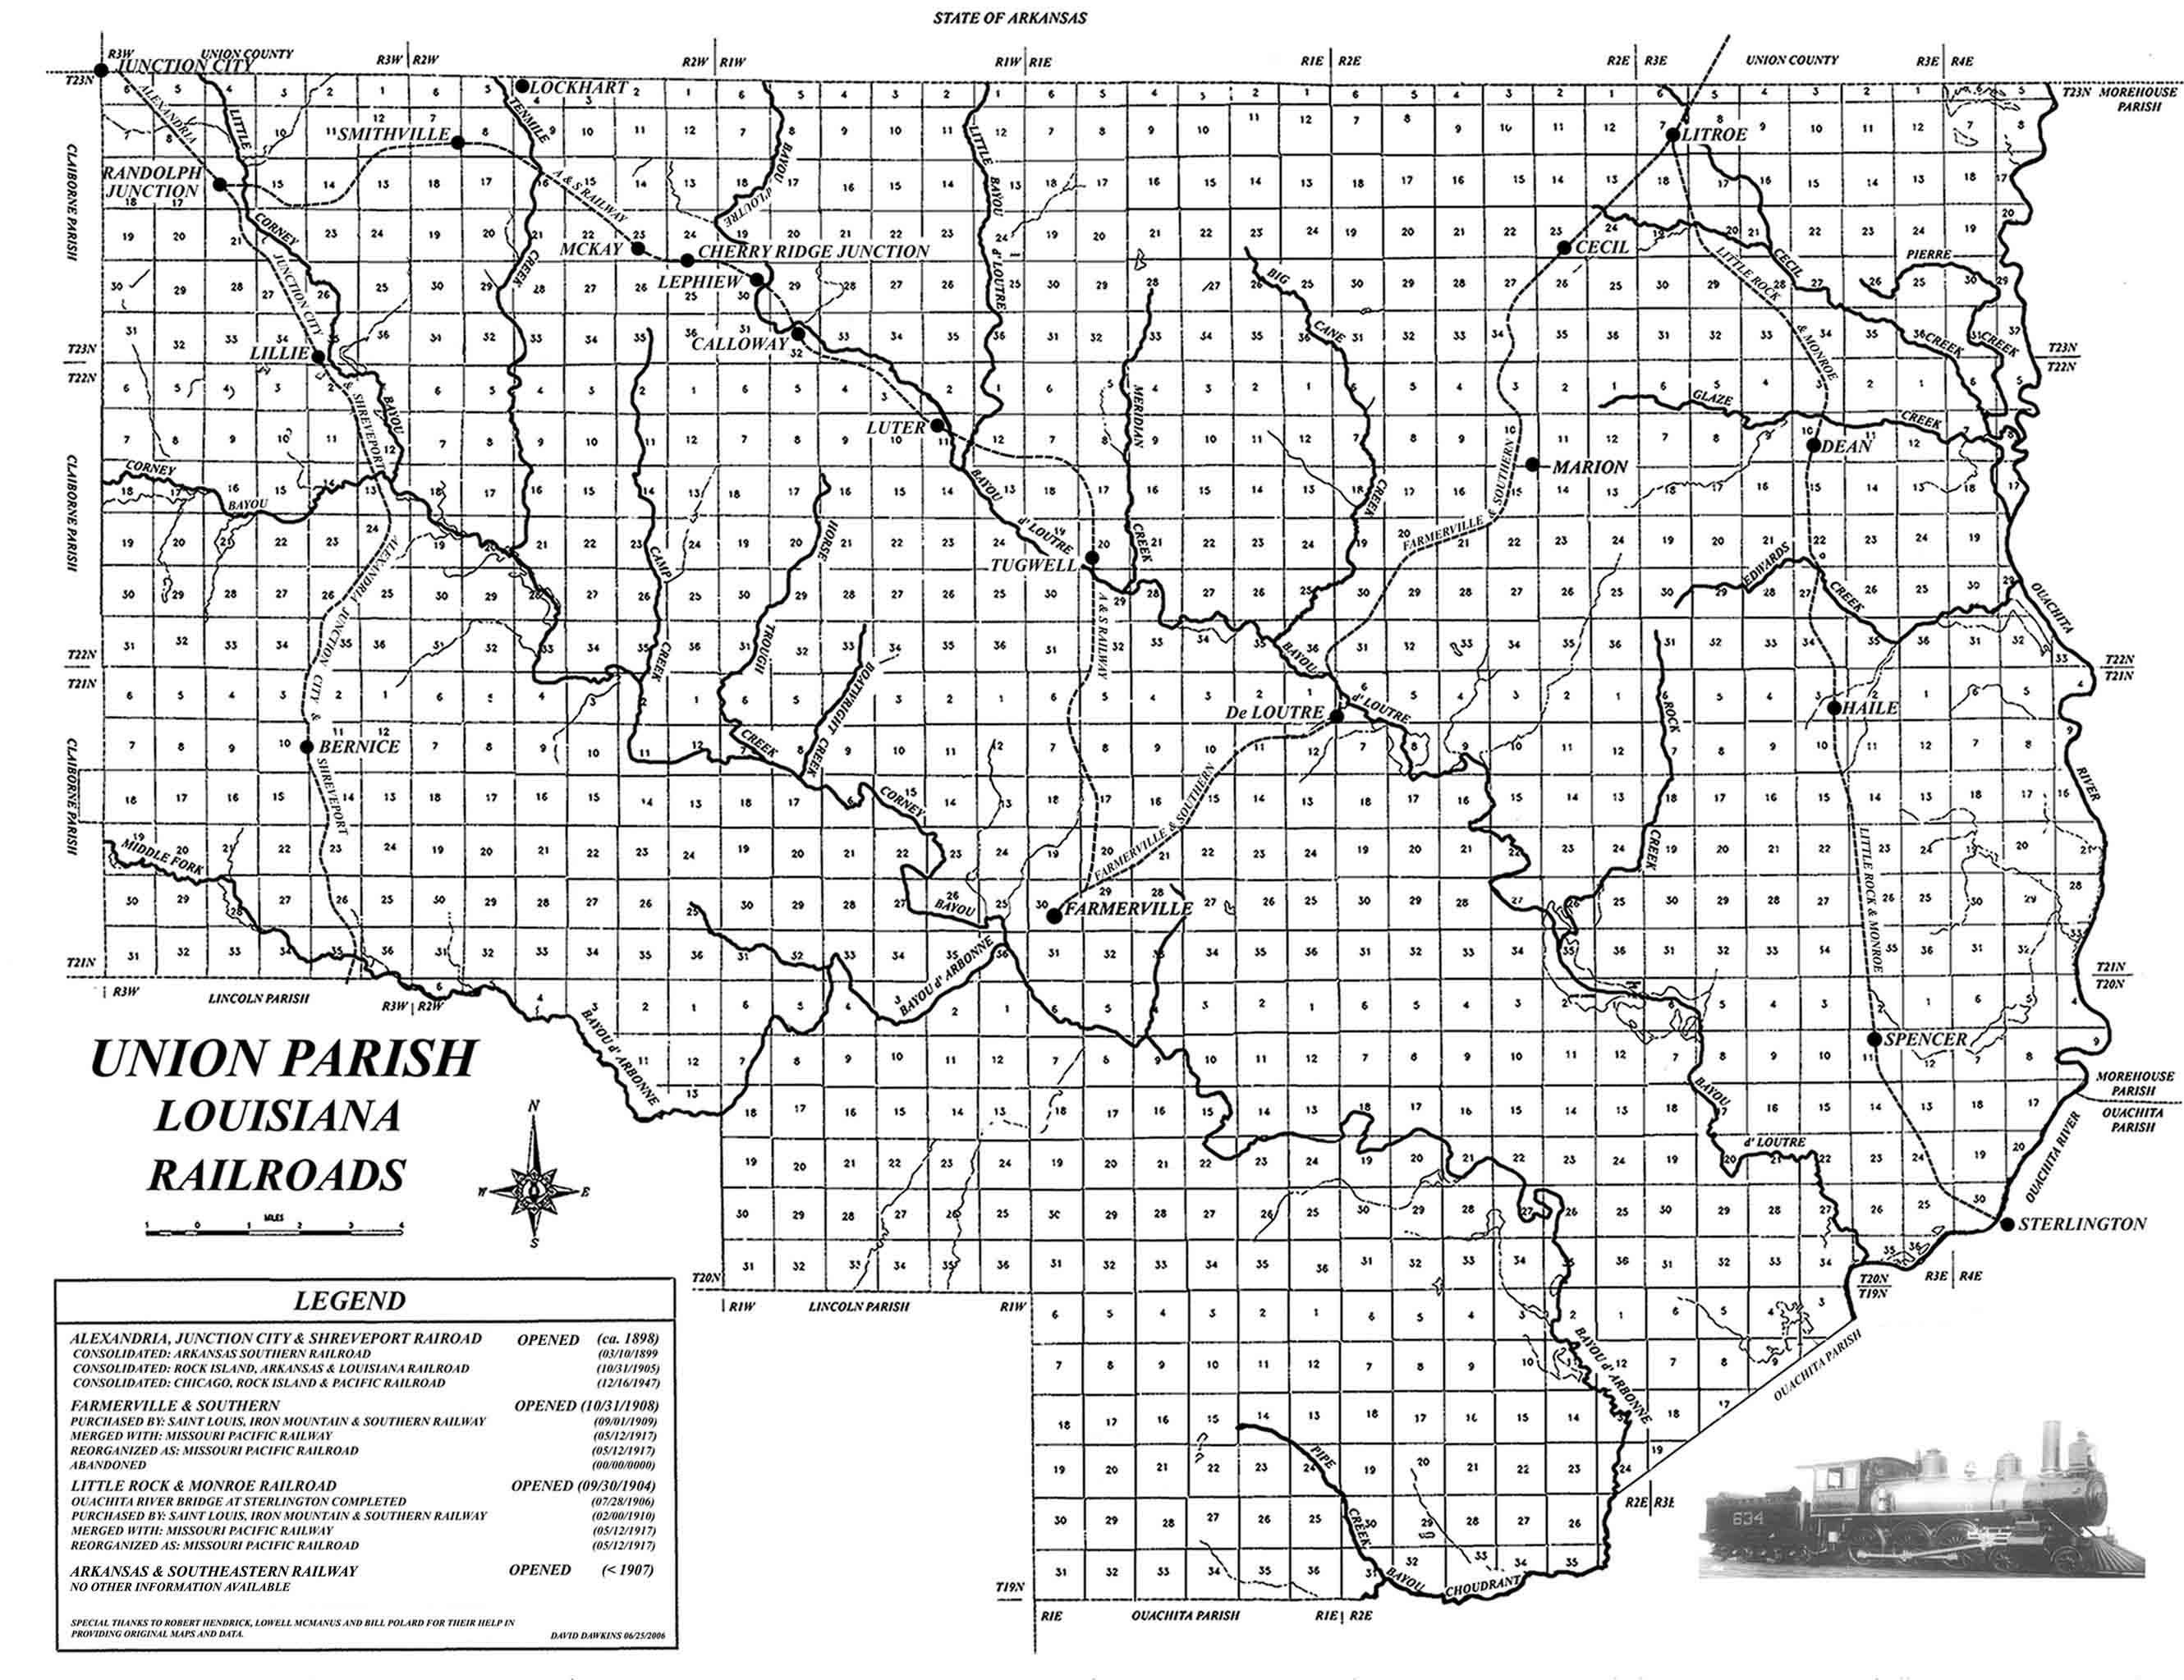 USGenWeb Archives Union Parish Louisiana Railroad Map